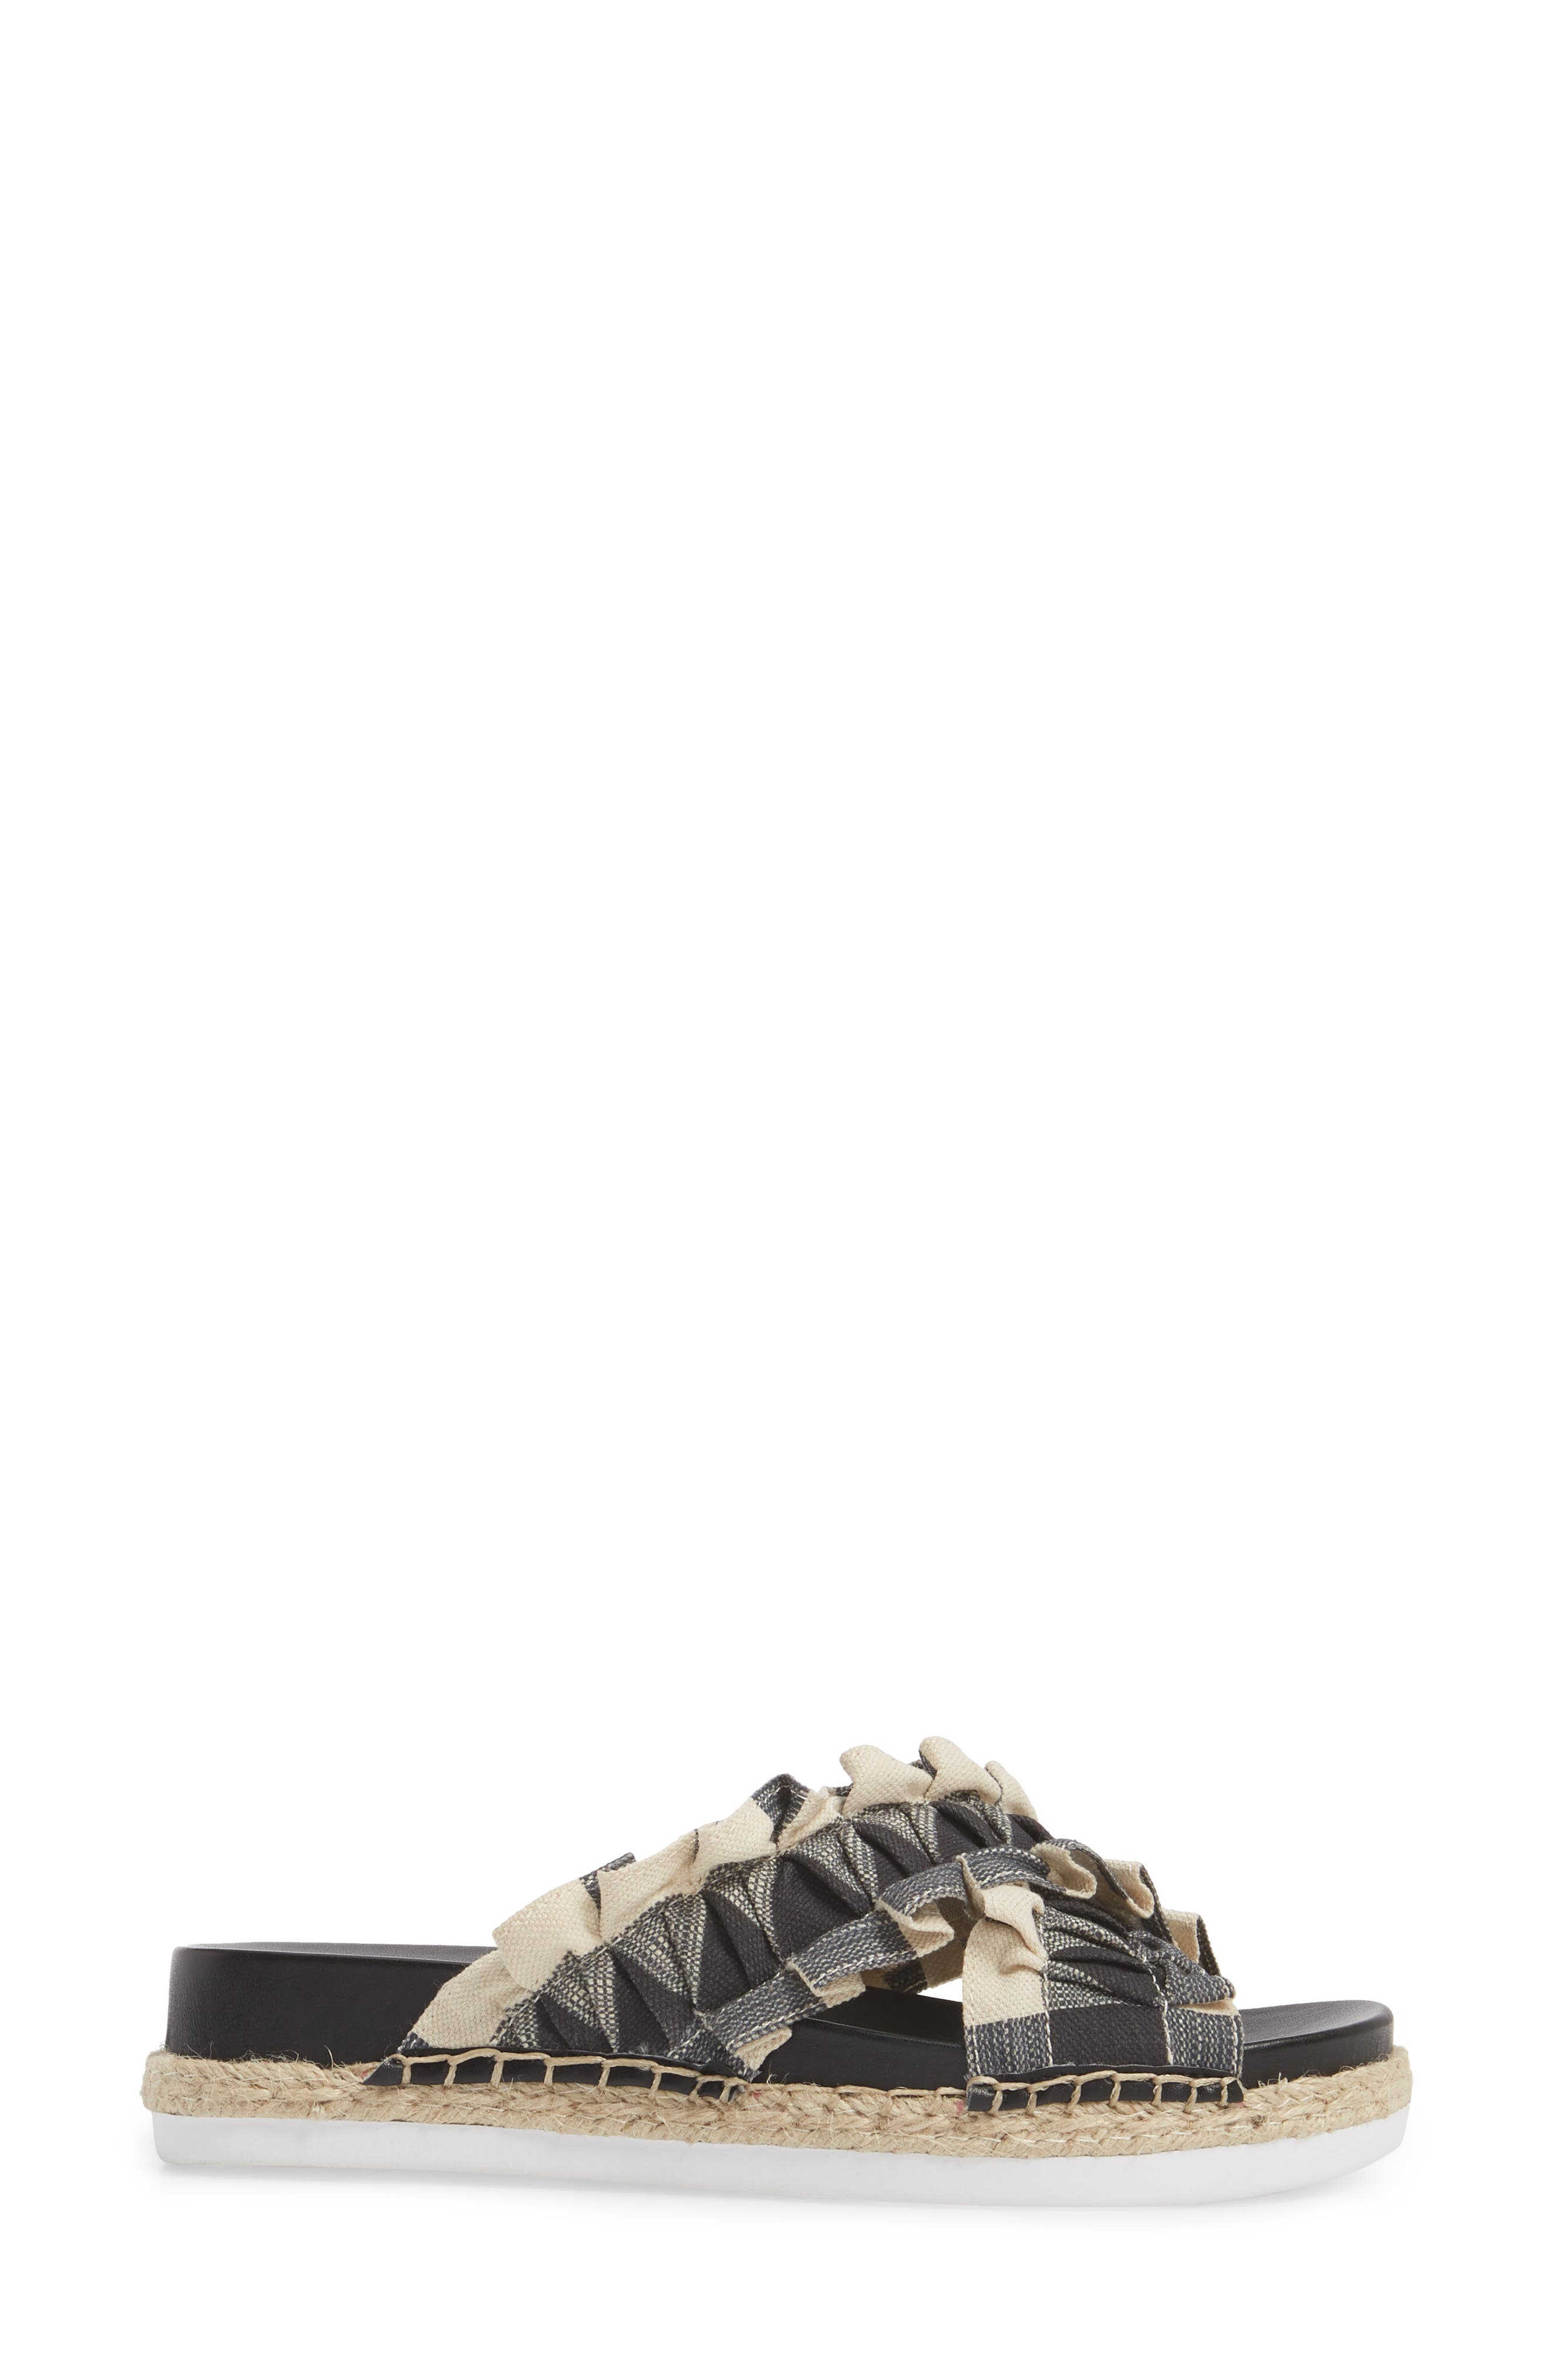 Salyn Slide Sandal,                             Alternate thumbnail 3, color,                             BLACK GINGHAM LINEN FABRIC